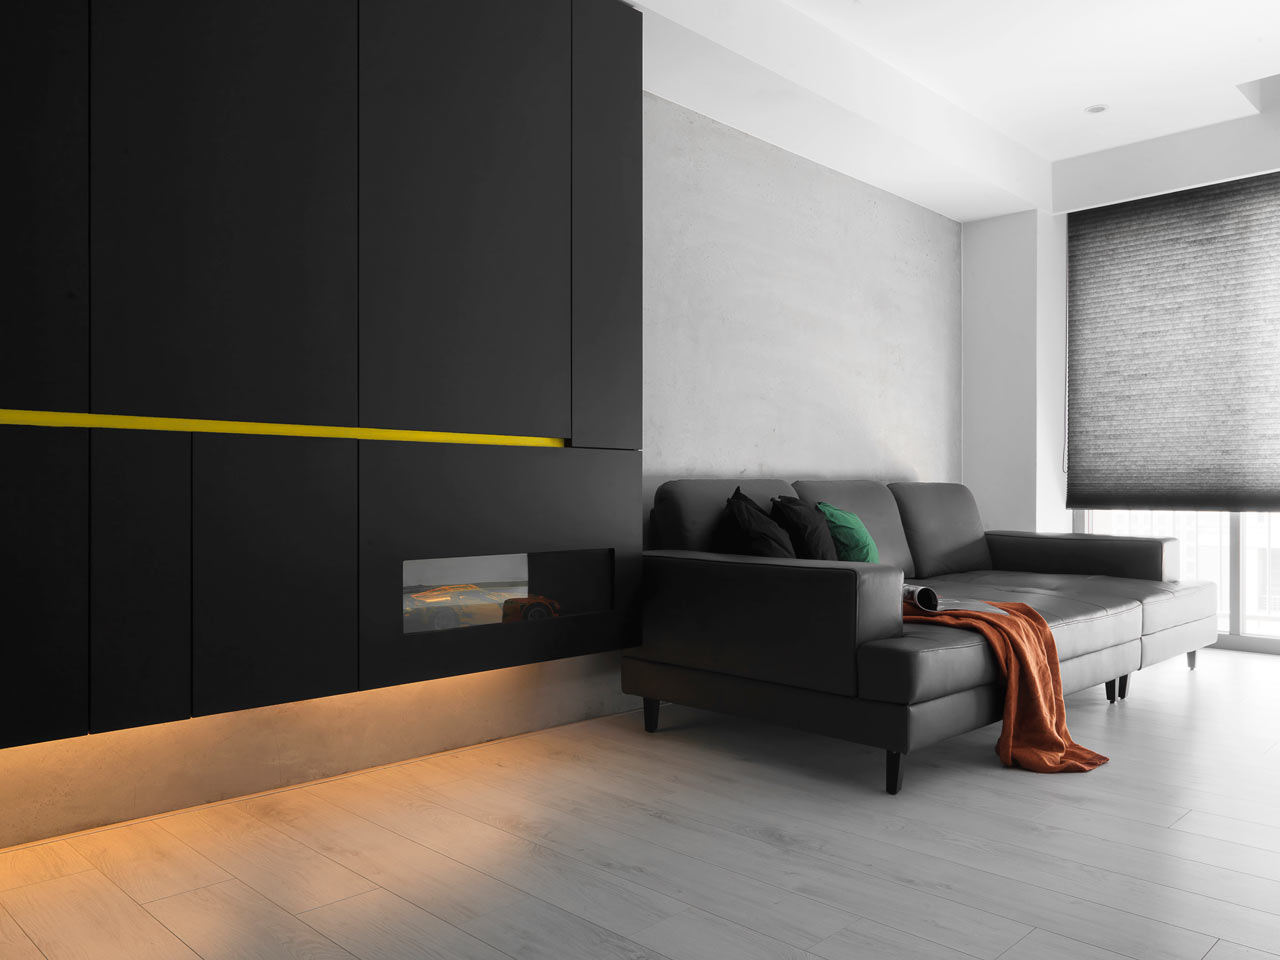 taichung h residence1 Modern Apartment with Bright Yellow Accents